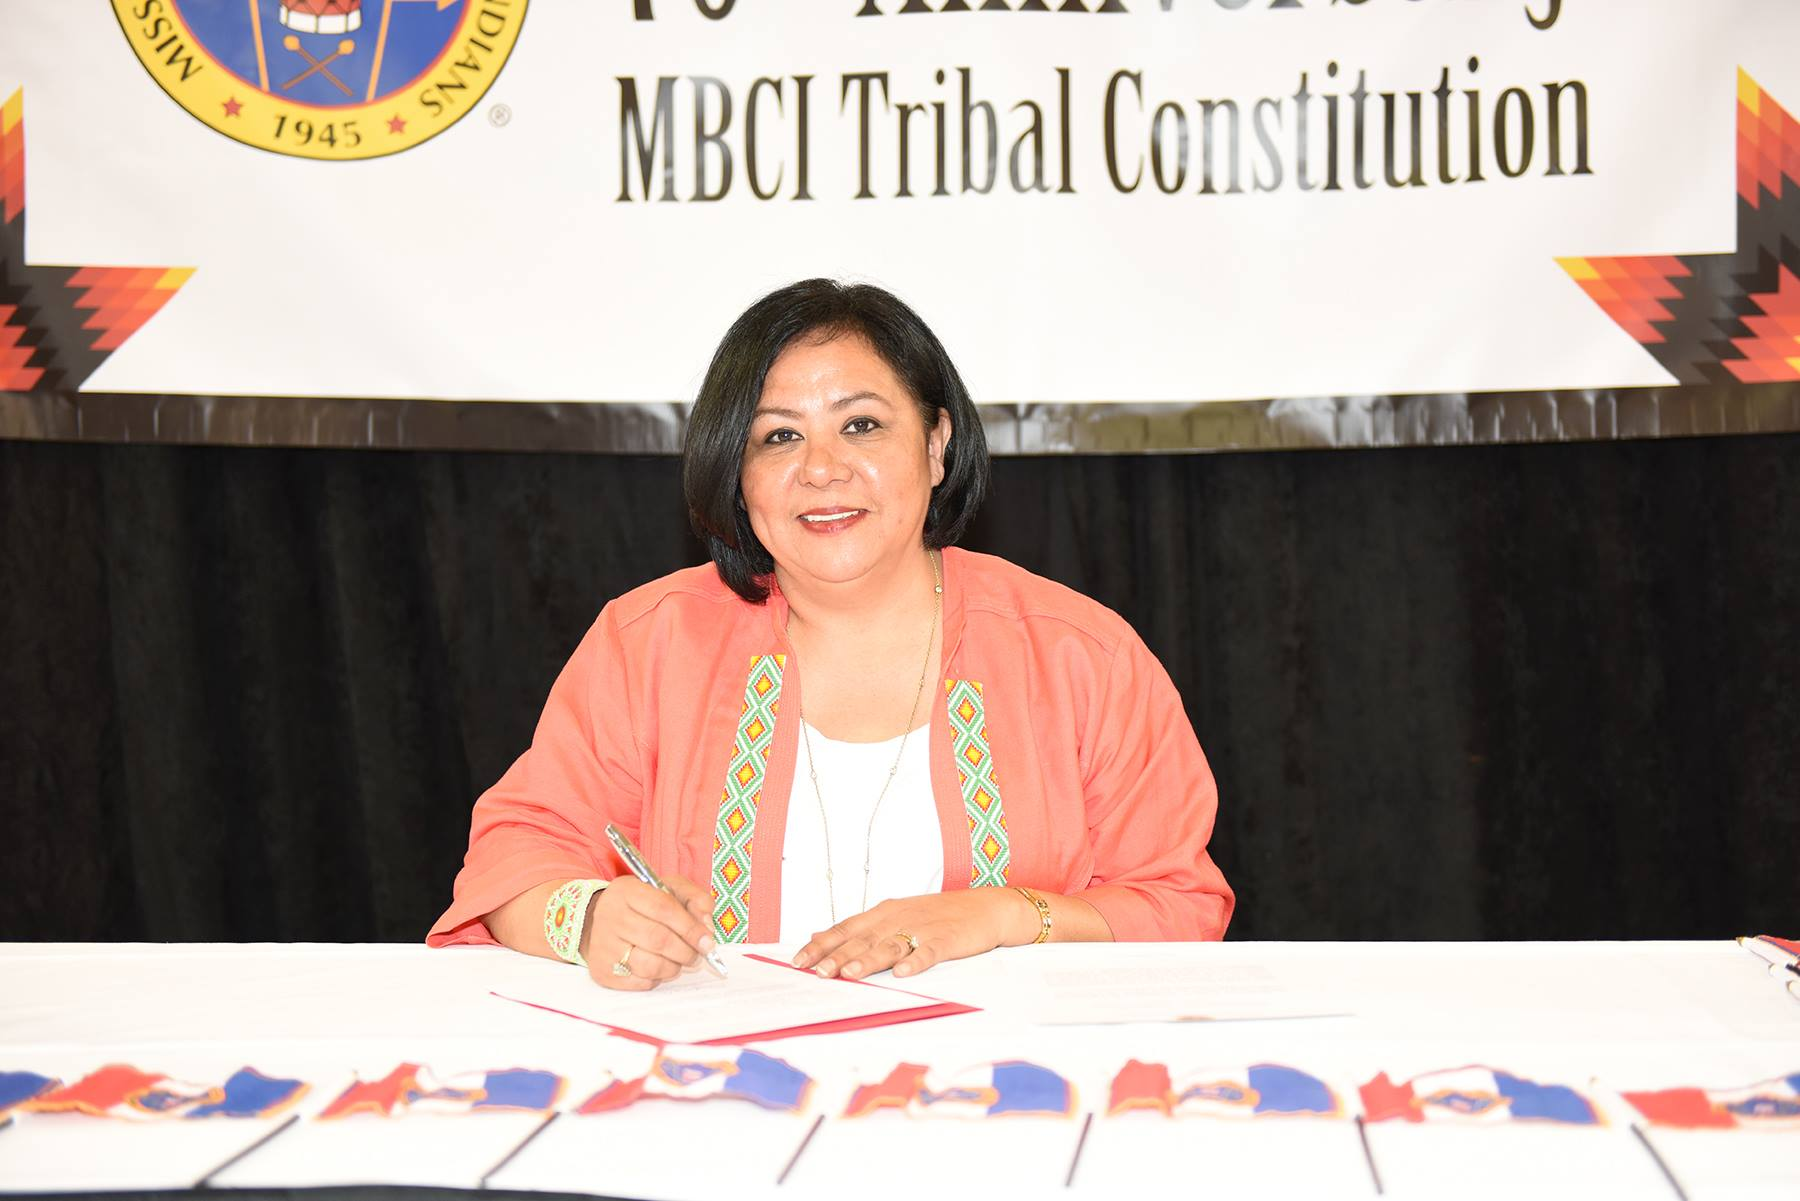 Mississippi Choctaw group seeks ouster of Chief Phyllis Anderson